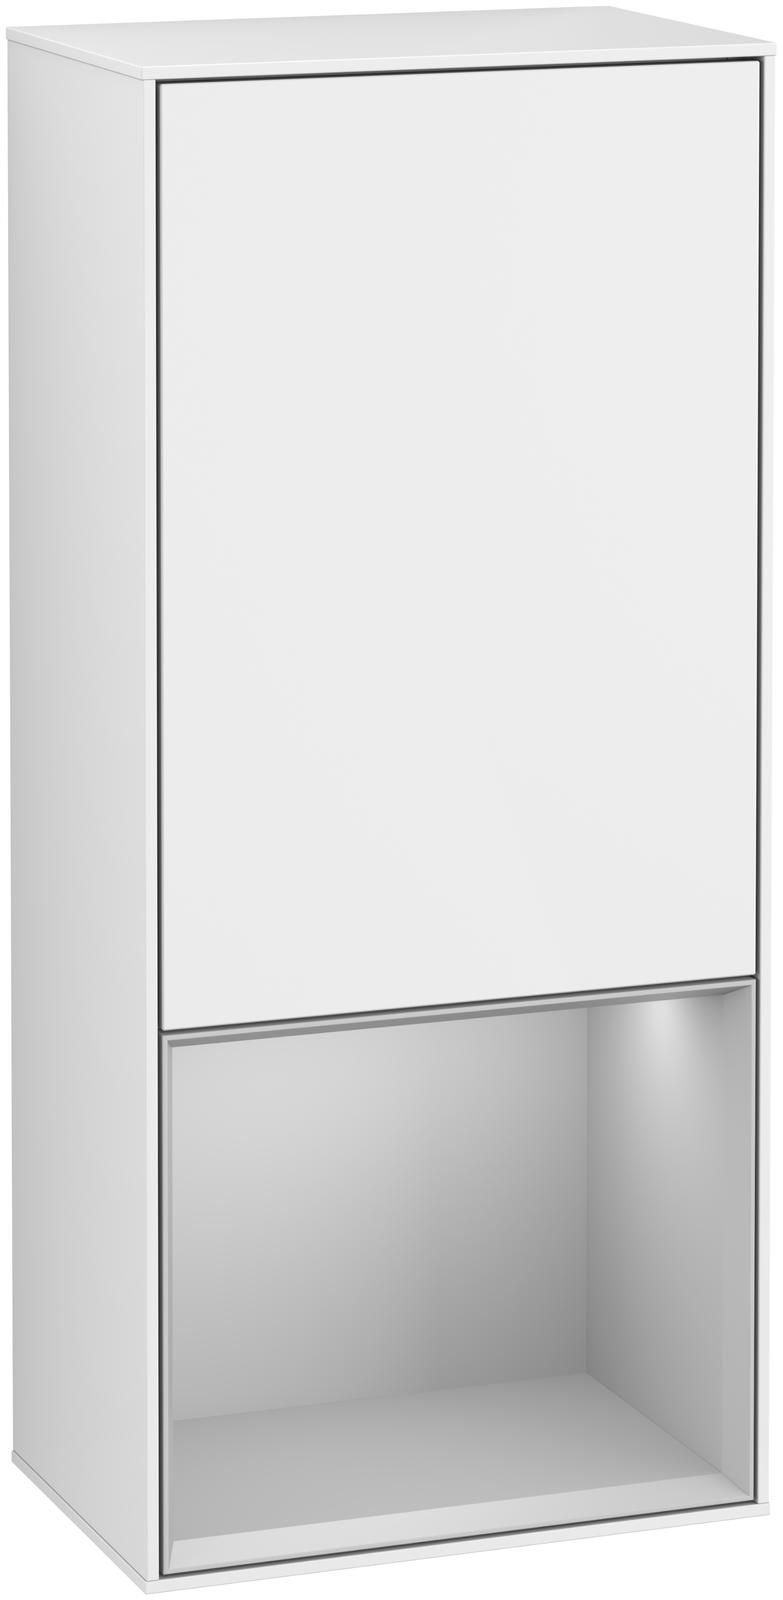 Villeroy & Boch Finion F54 Seitenschrank mit Regalelement 1 Tür Anschlag links LED-Beleuchtung B:41,8xH:93,6xT:27cm Front, Korpus: Glossy White Lack, Regal: Light Grey Matt F540GJGF